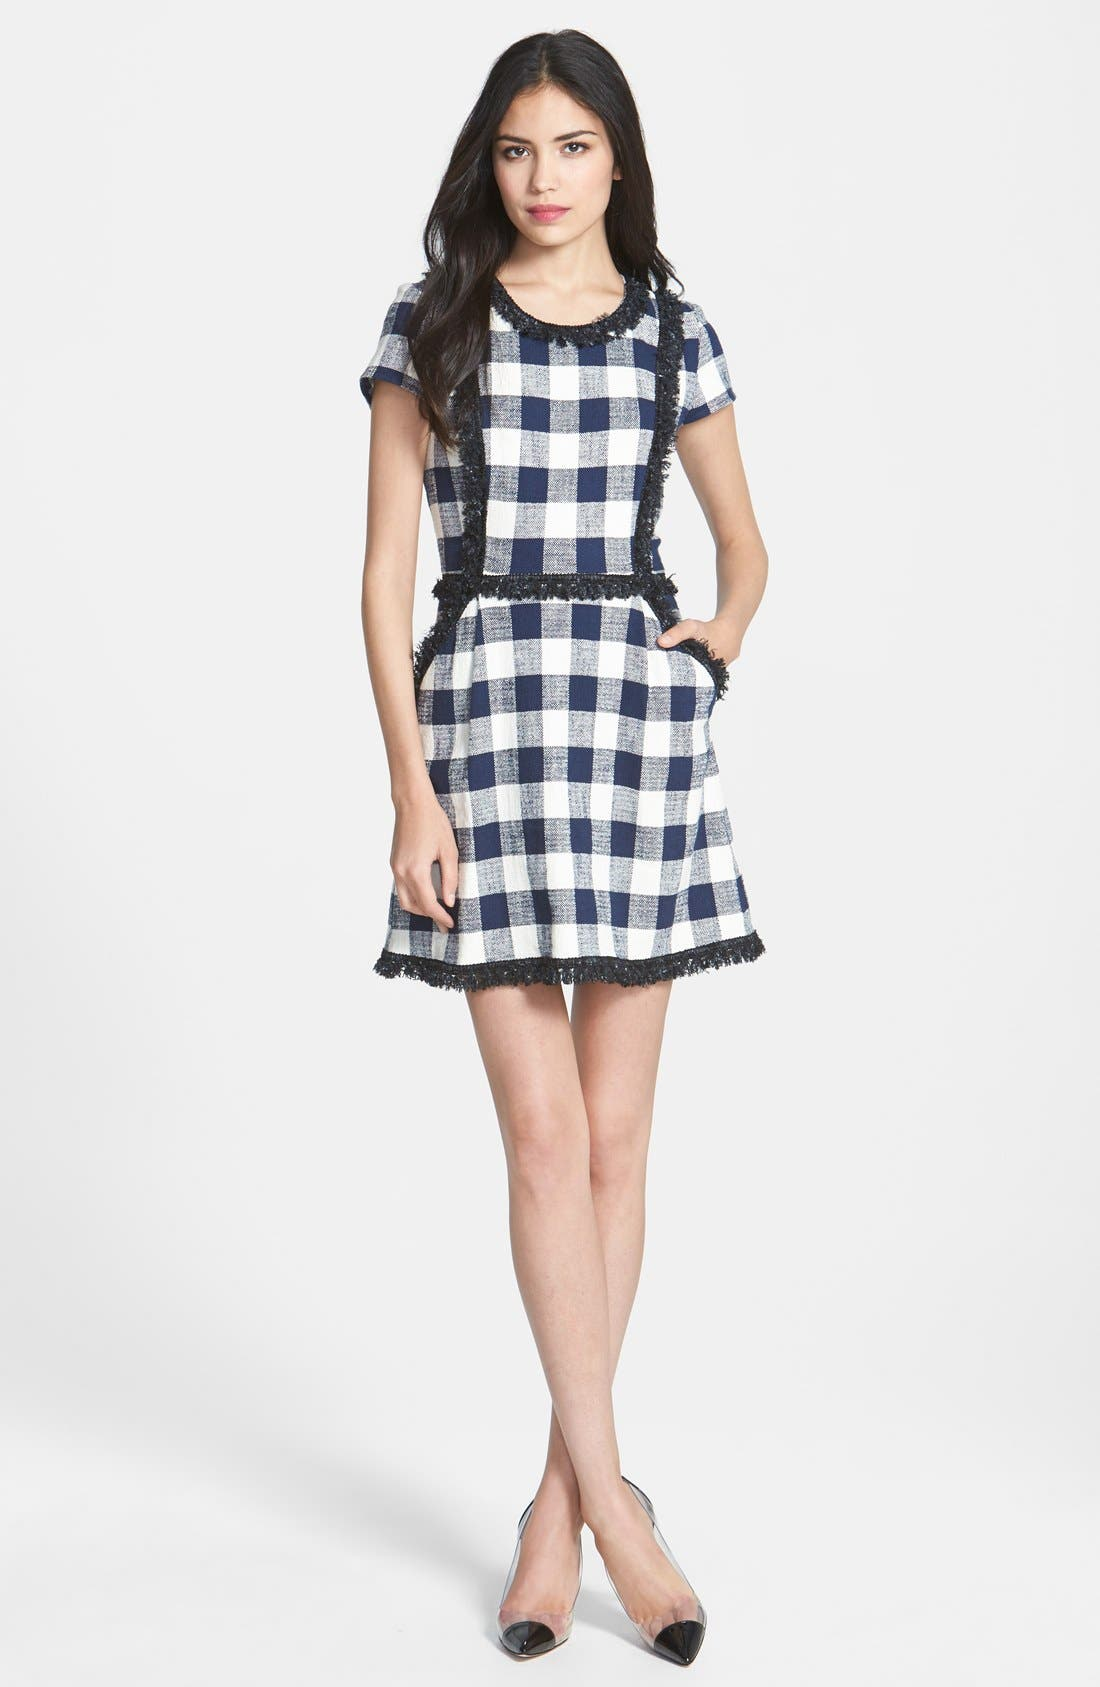 MILLY, Woven A-Line Dress, Main thumbnail 1, color, 420